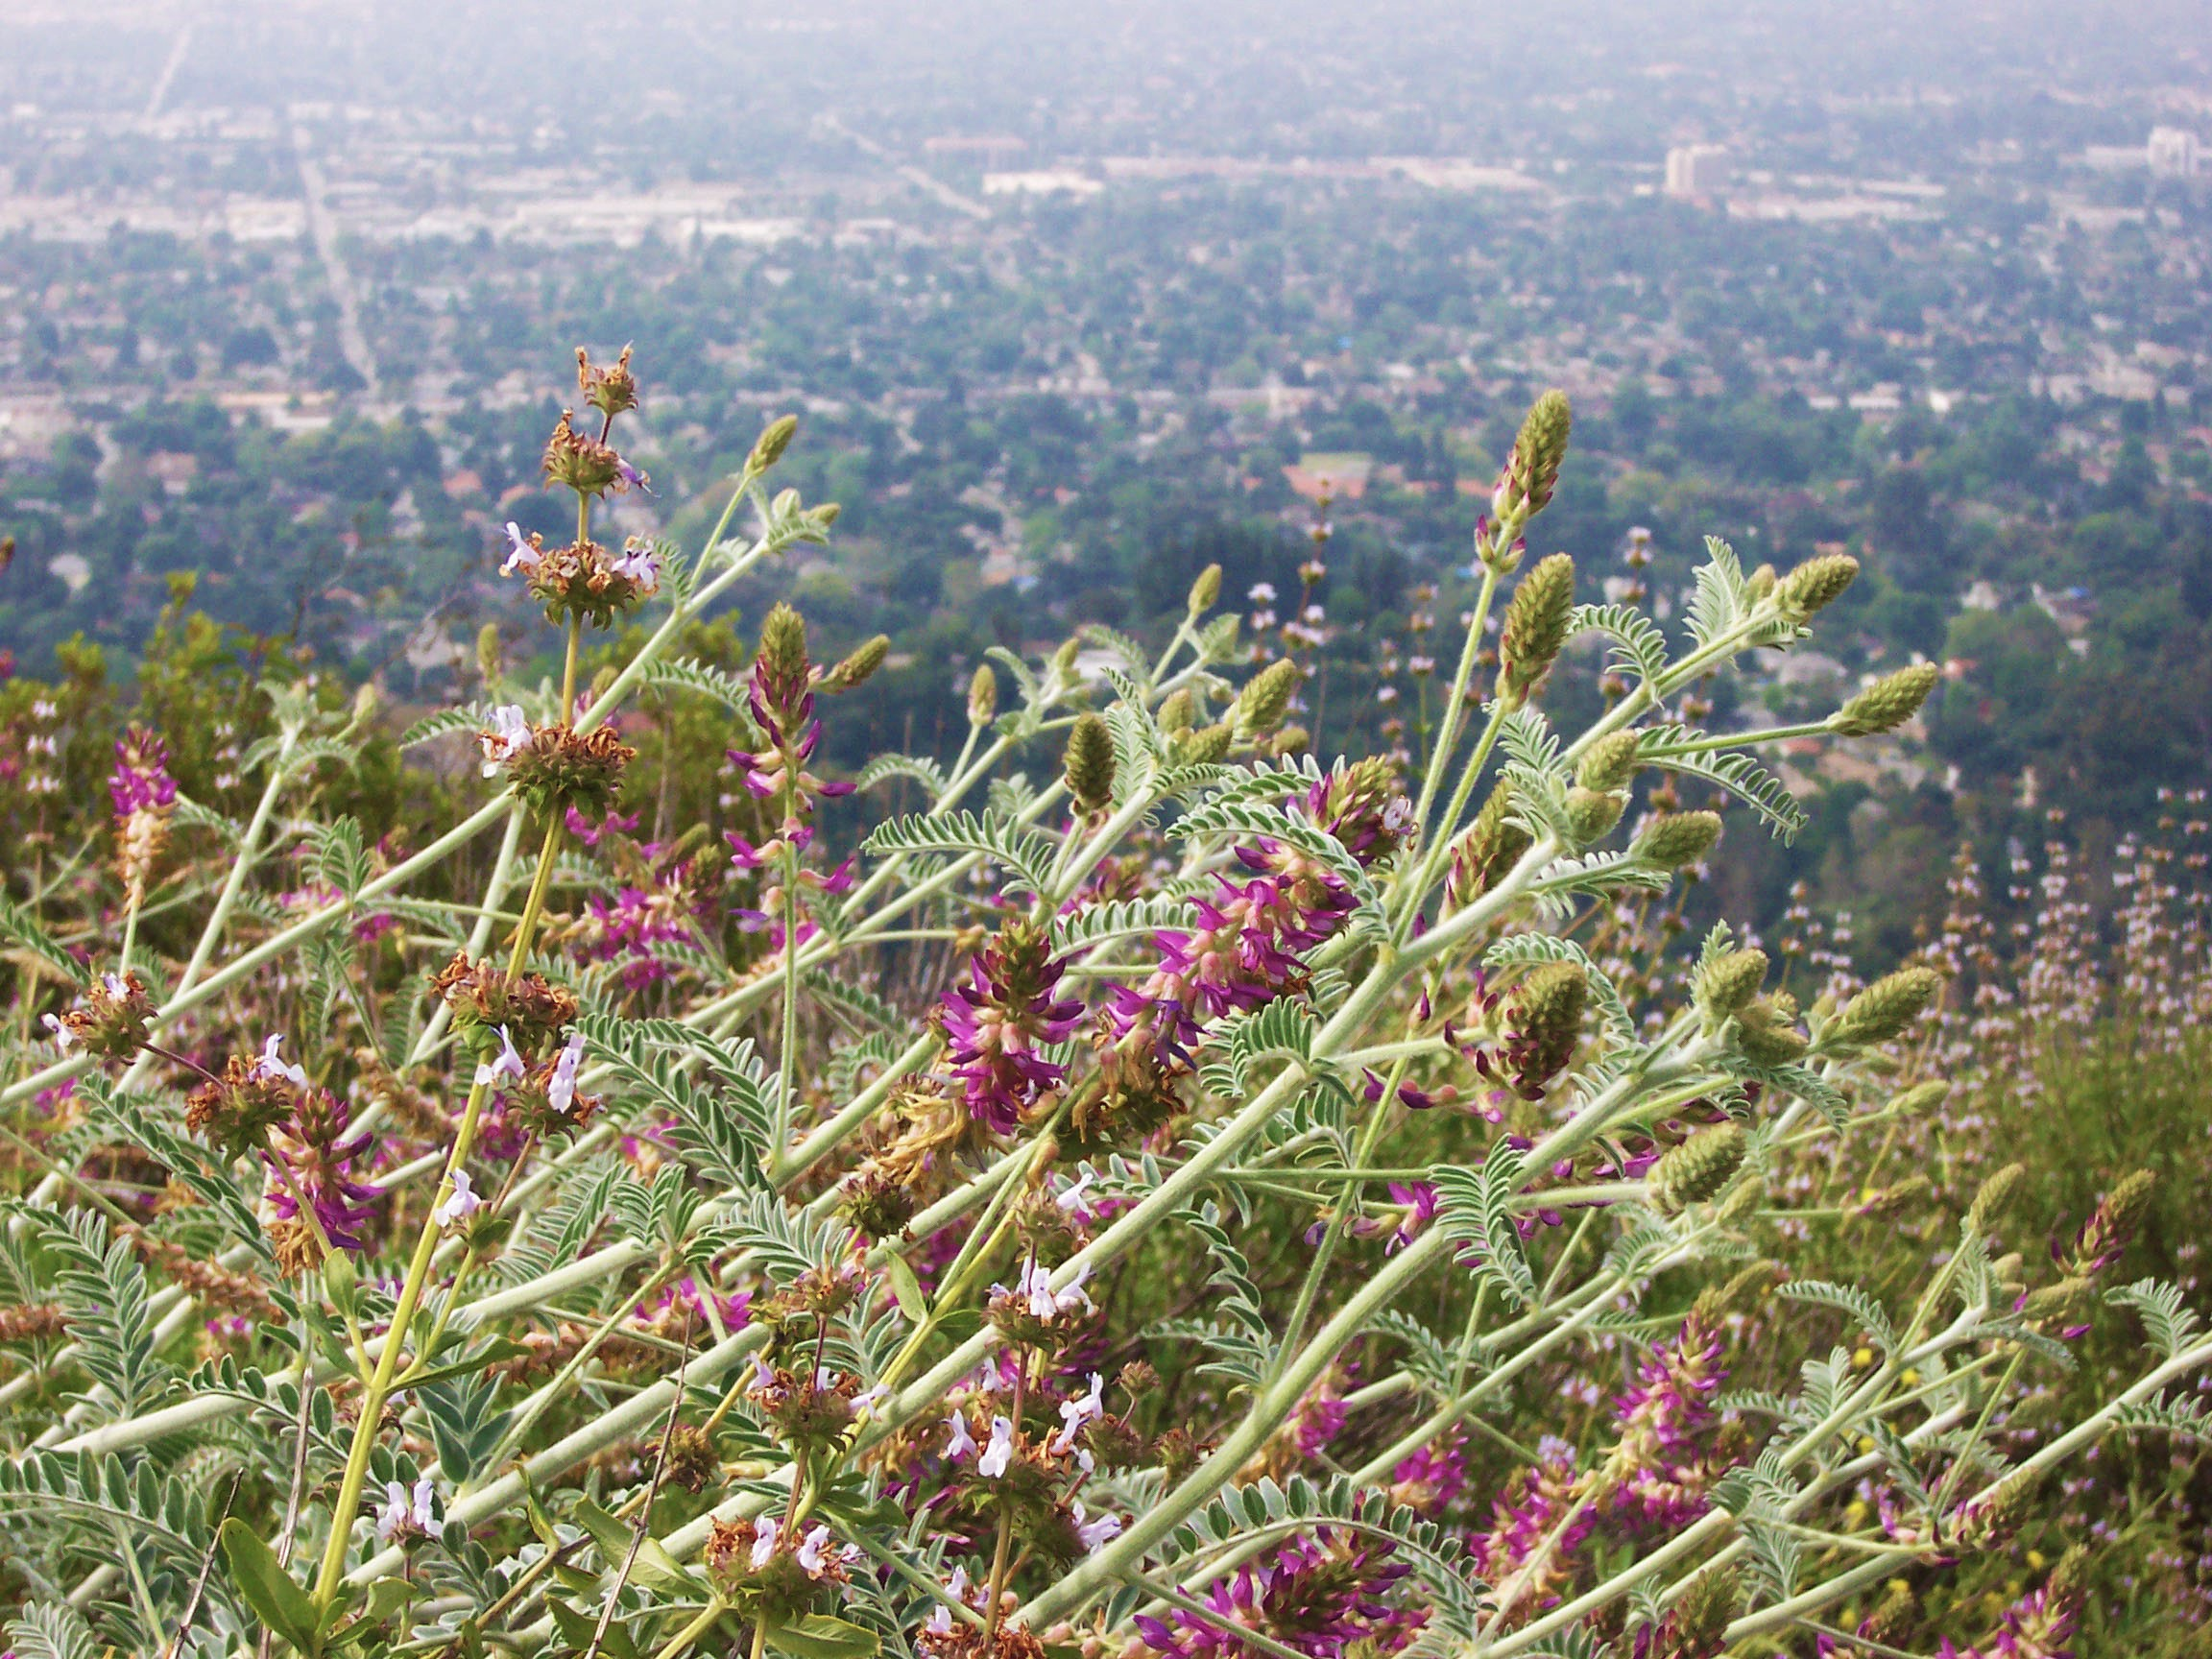 milk-vetch with dark purple flowers on a hill overlooking a city